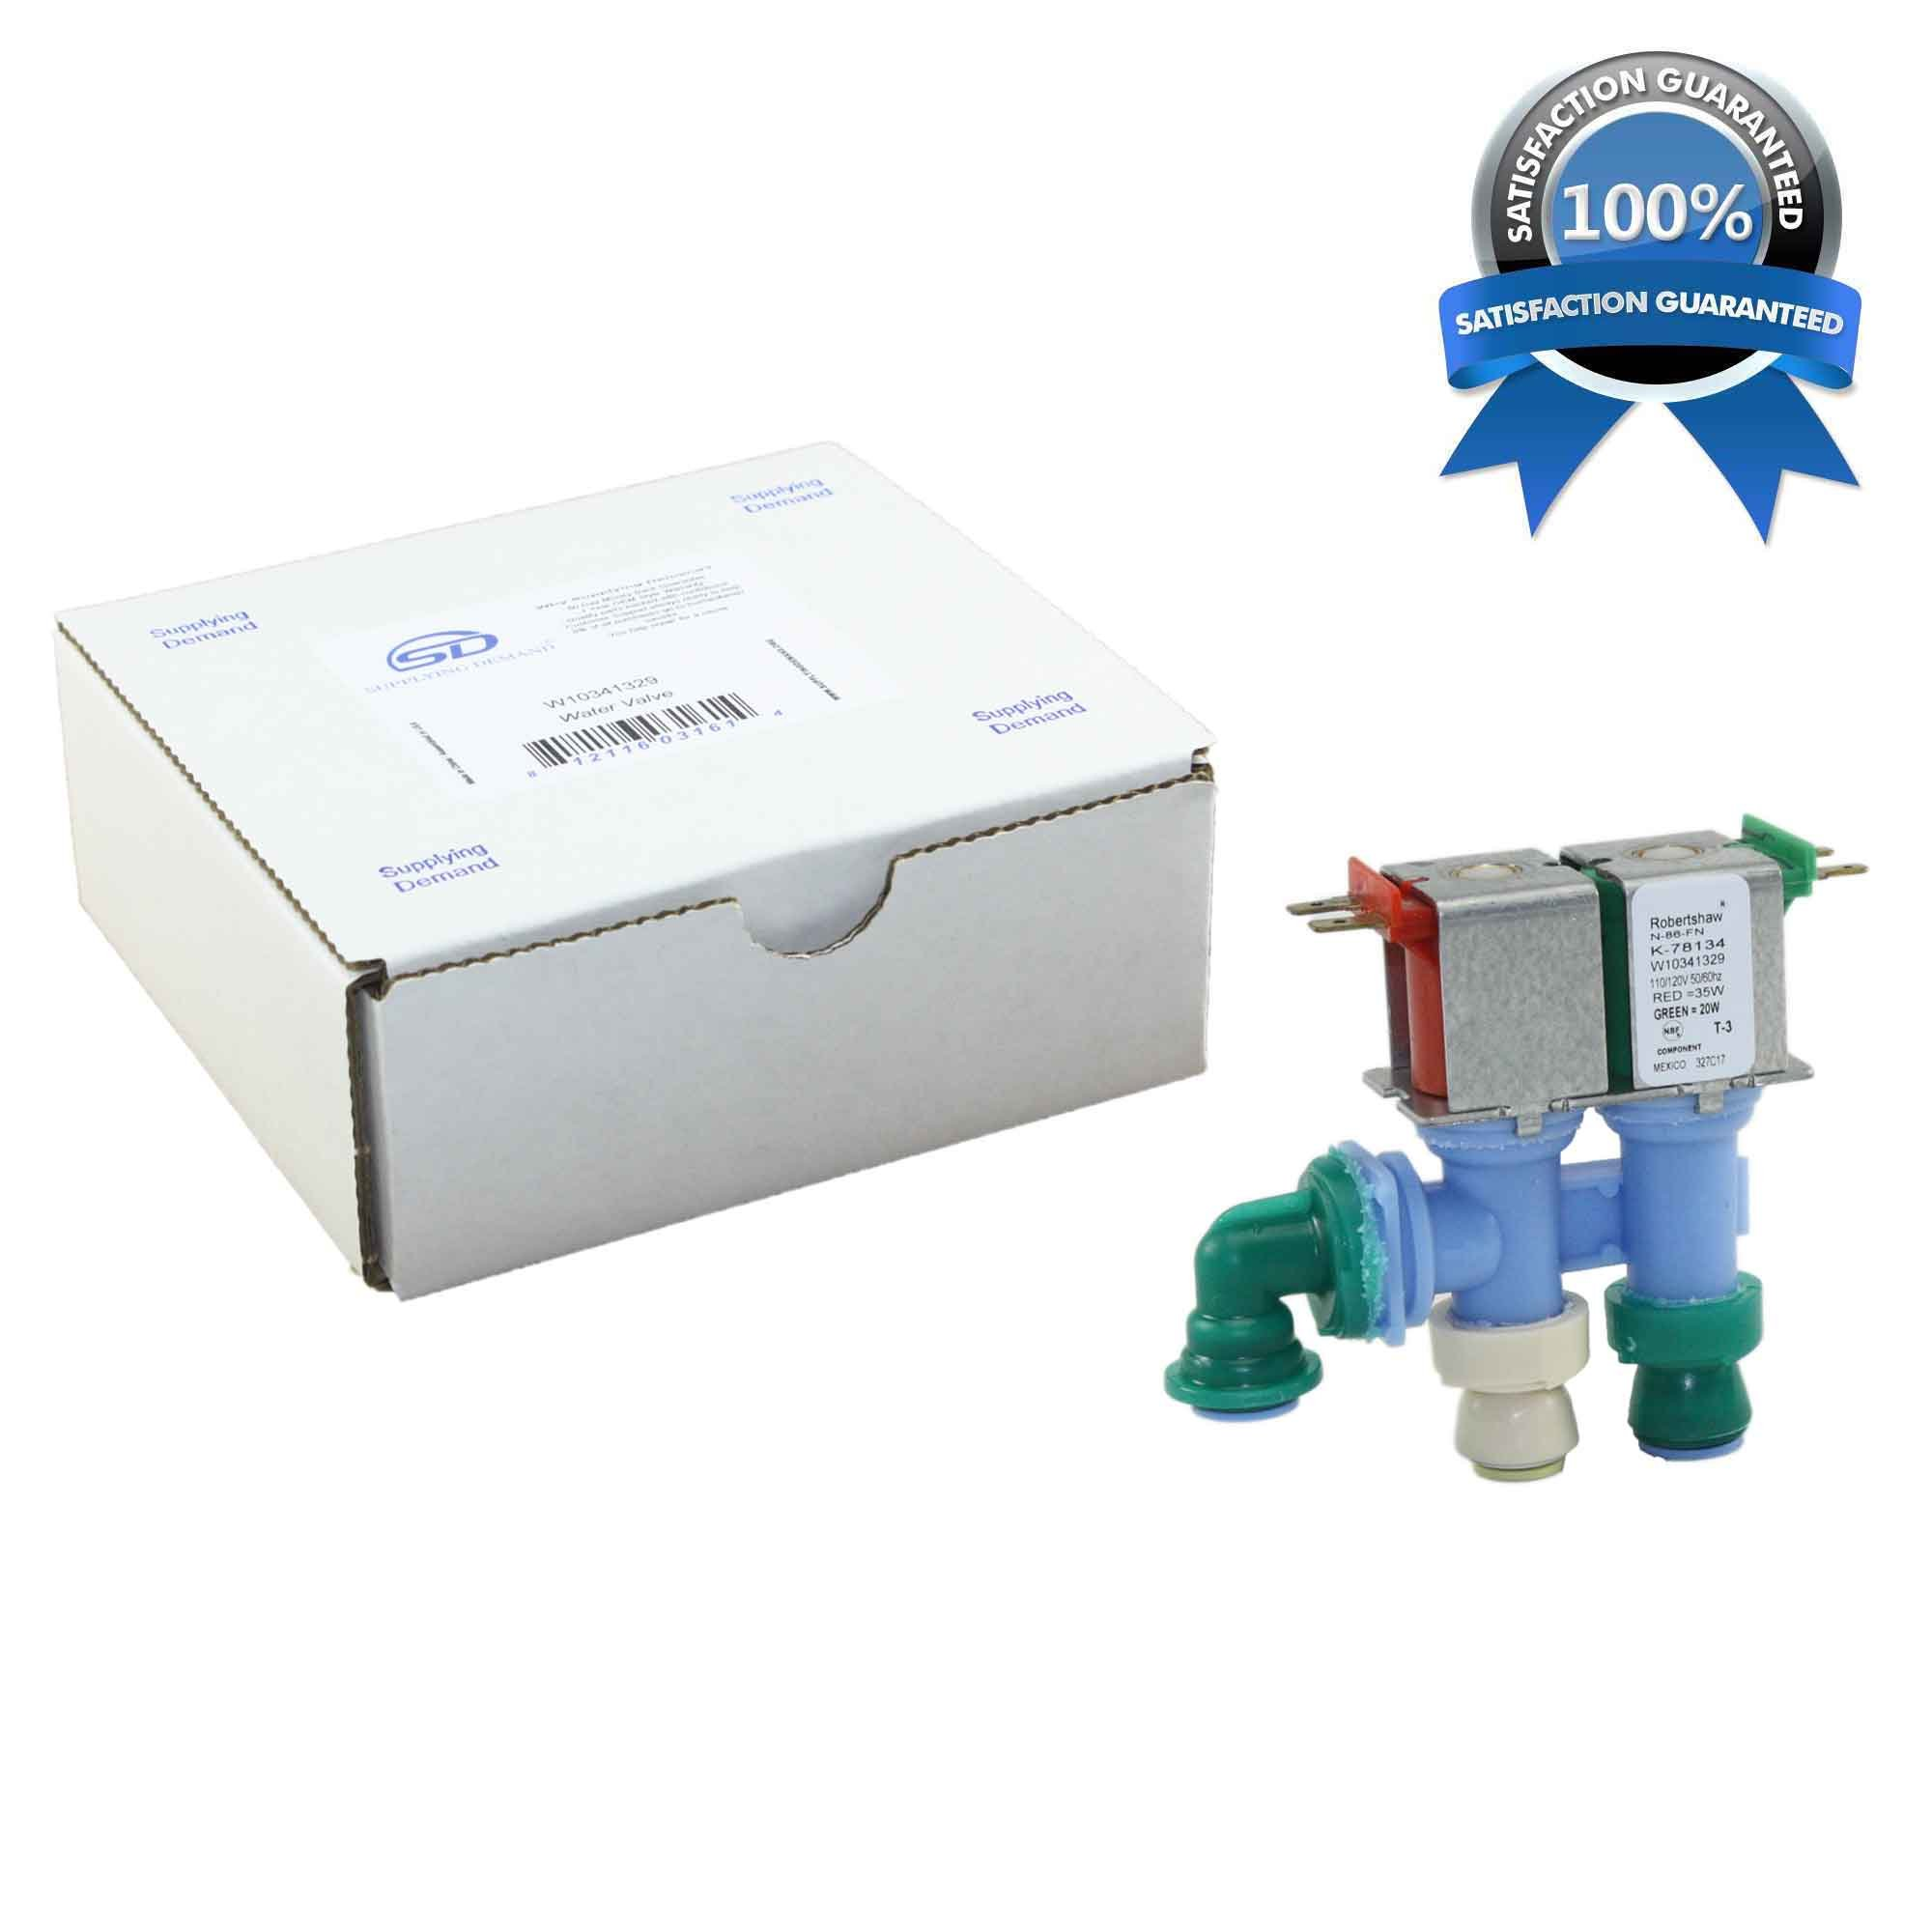 Supplying Demand W10341329 Refrigerator Dual Water Valve Works With AP6019940 by Supplying Demand (Image #2)